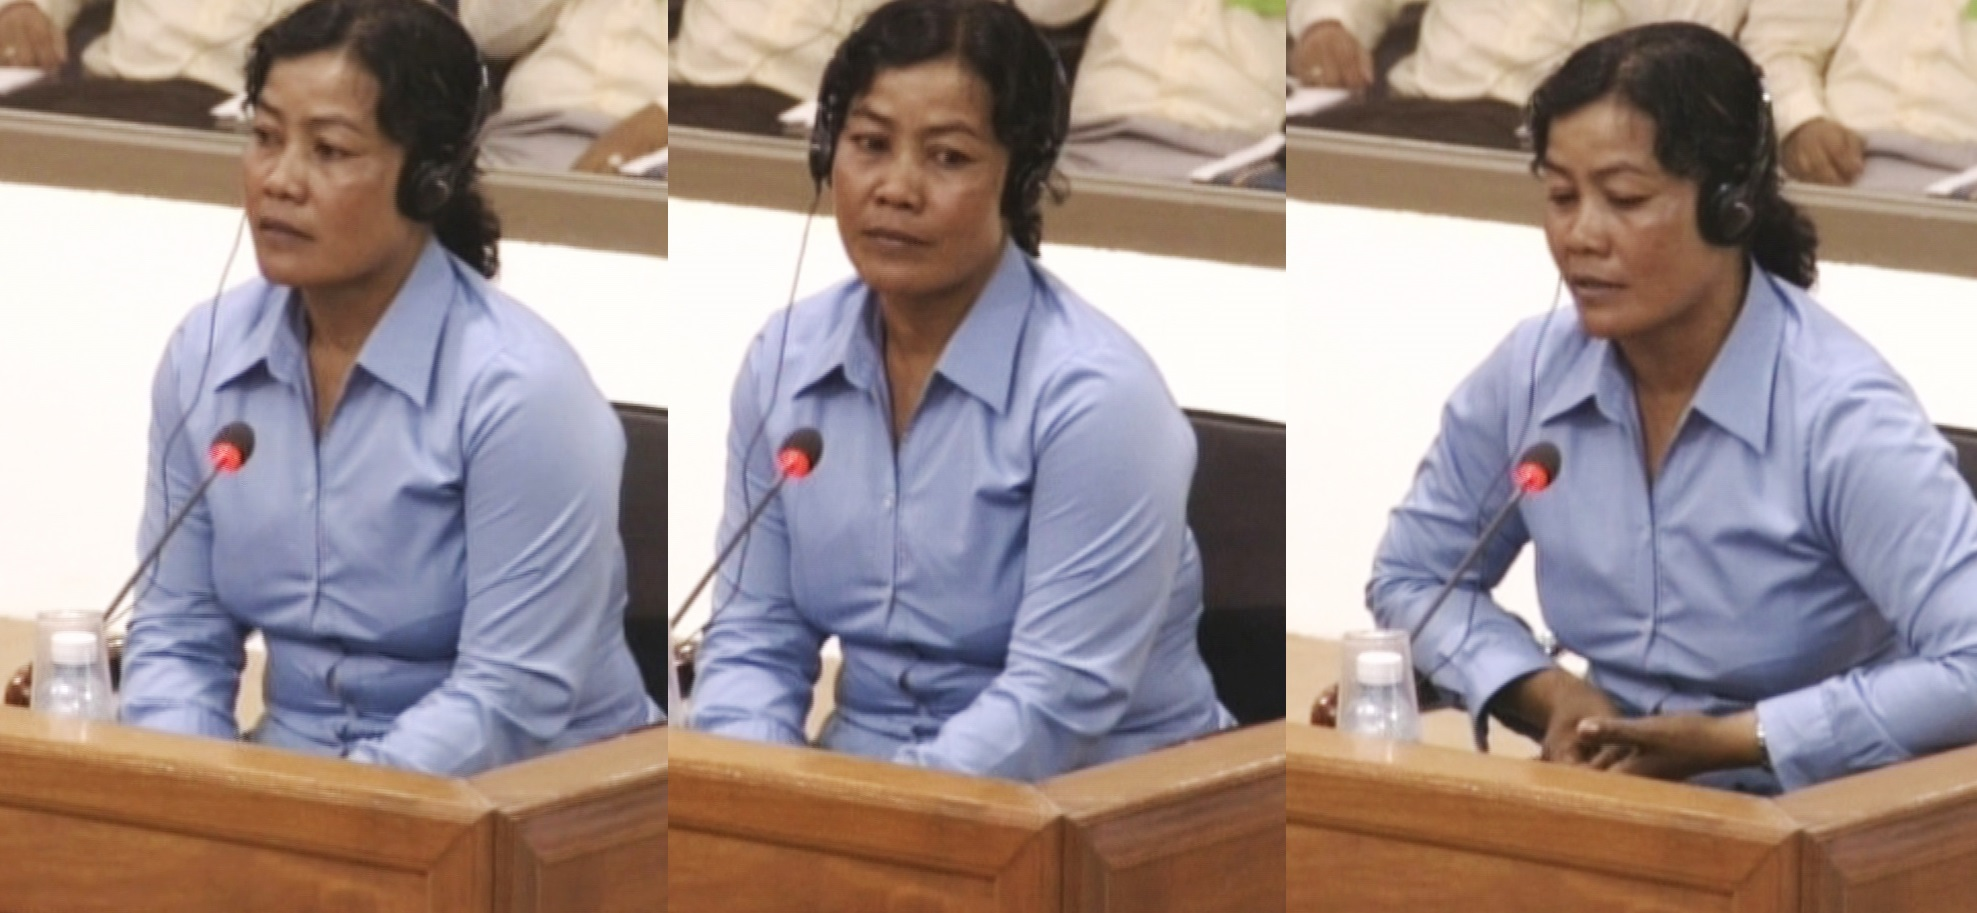 Photo of Cambodian Court proceedings